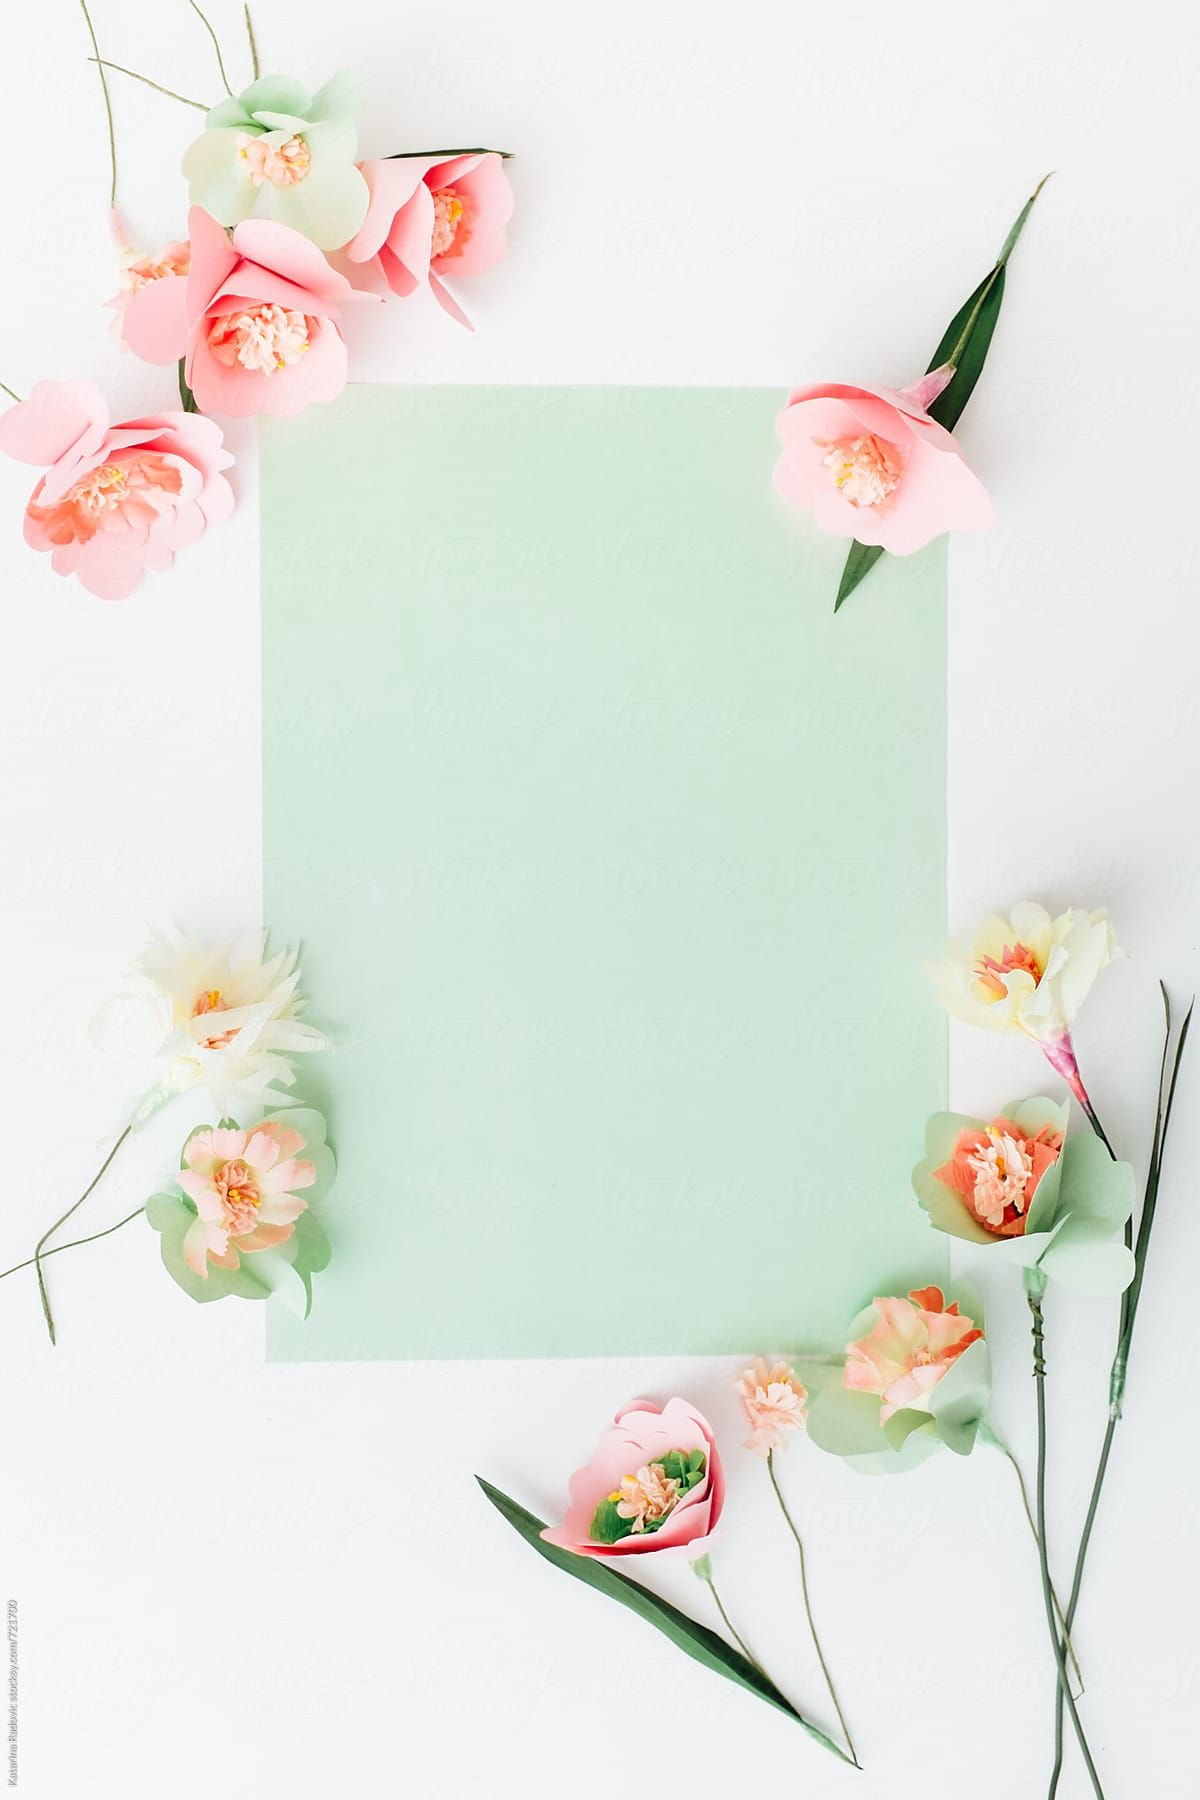 Paper Flowers Arranged With A Green Pastel Background Download This High Resolution Stock Photo By Katarina Ra Pastel Background Flower Wallpaper Paper Flowers